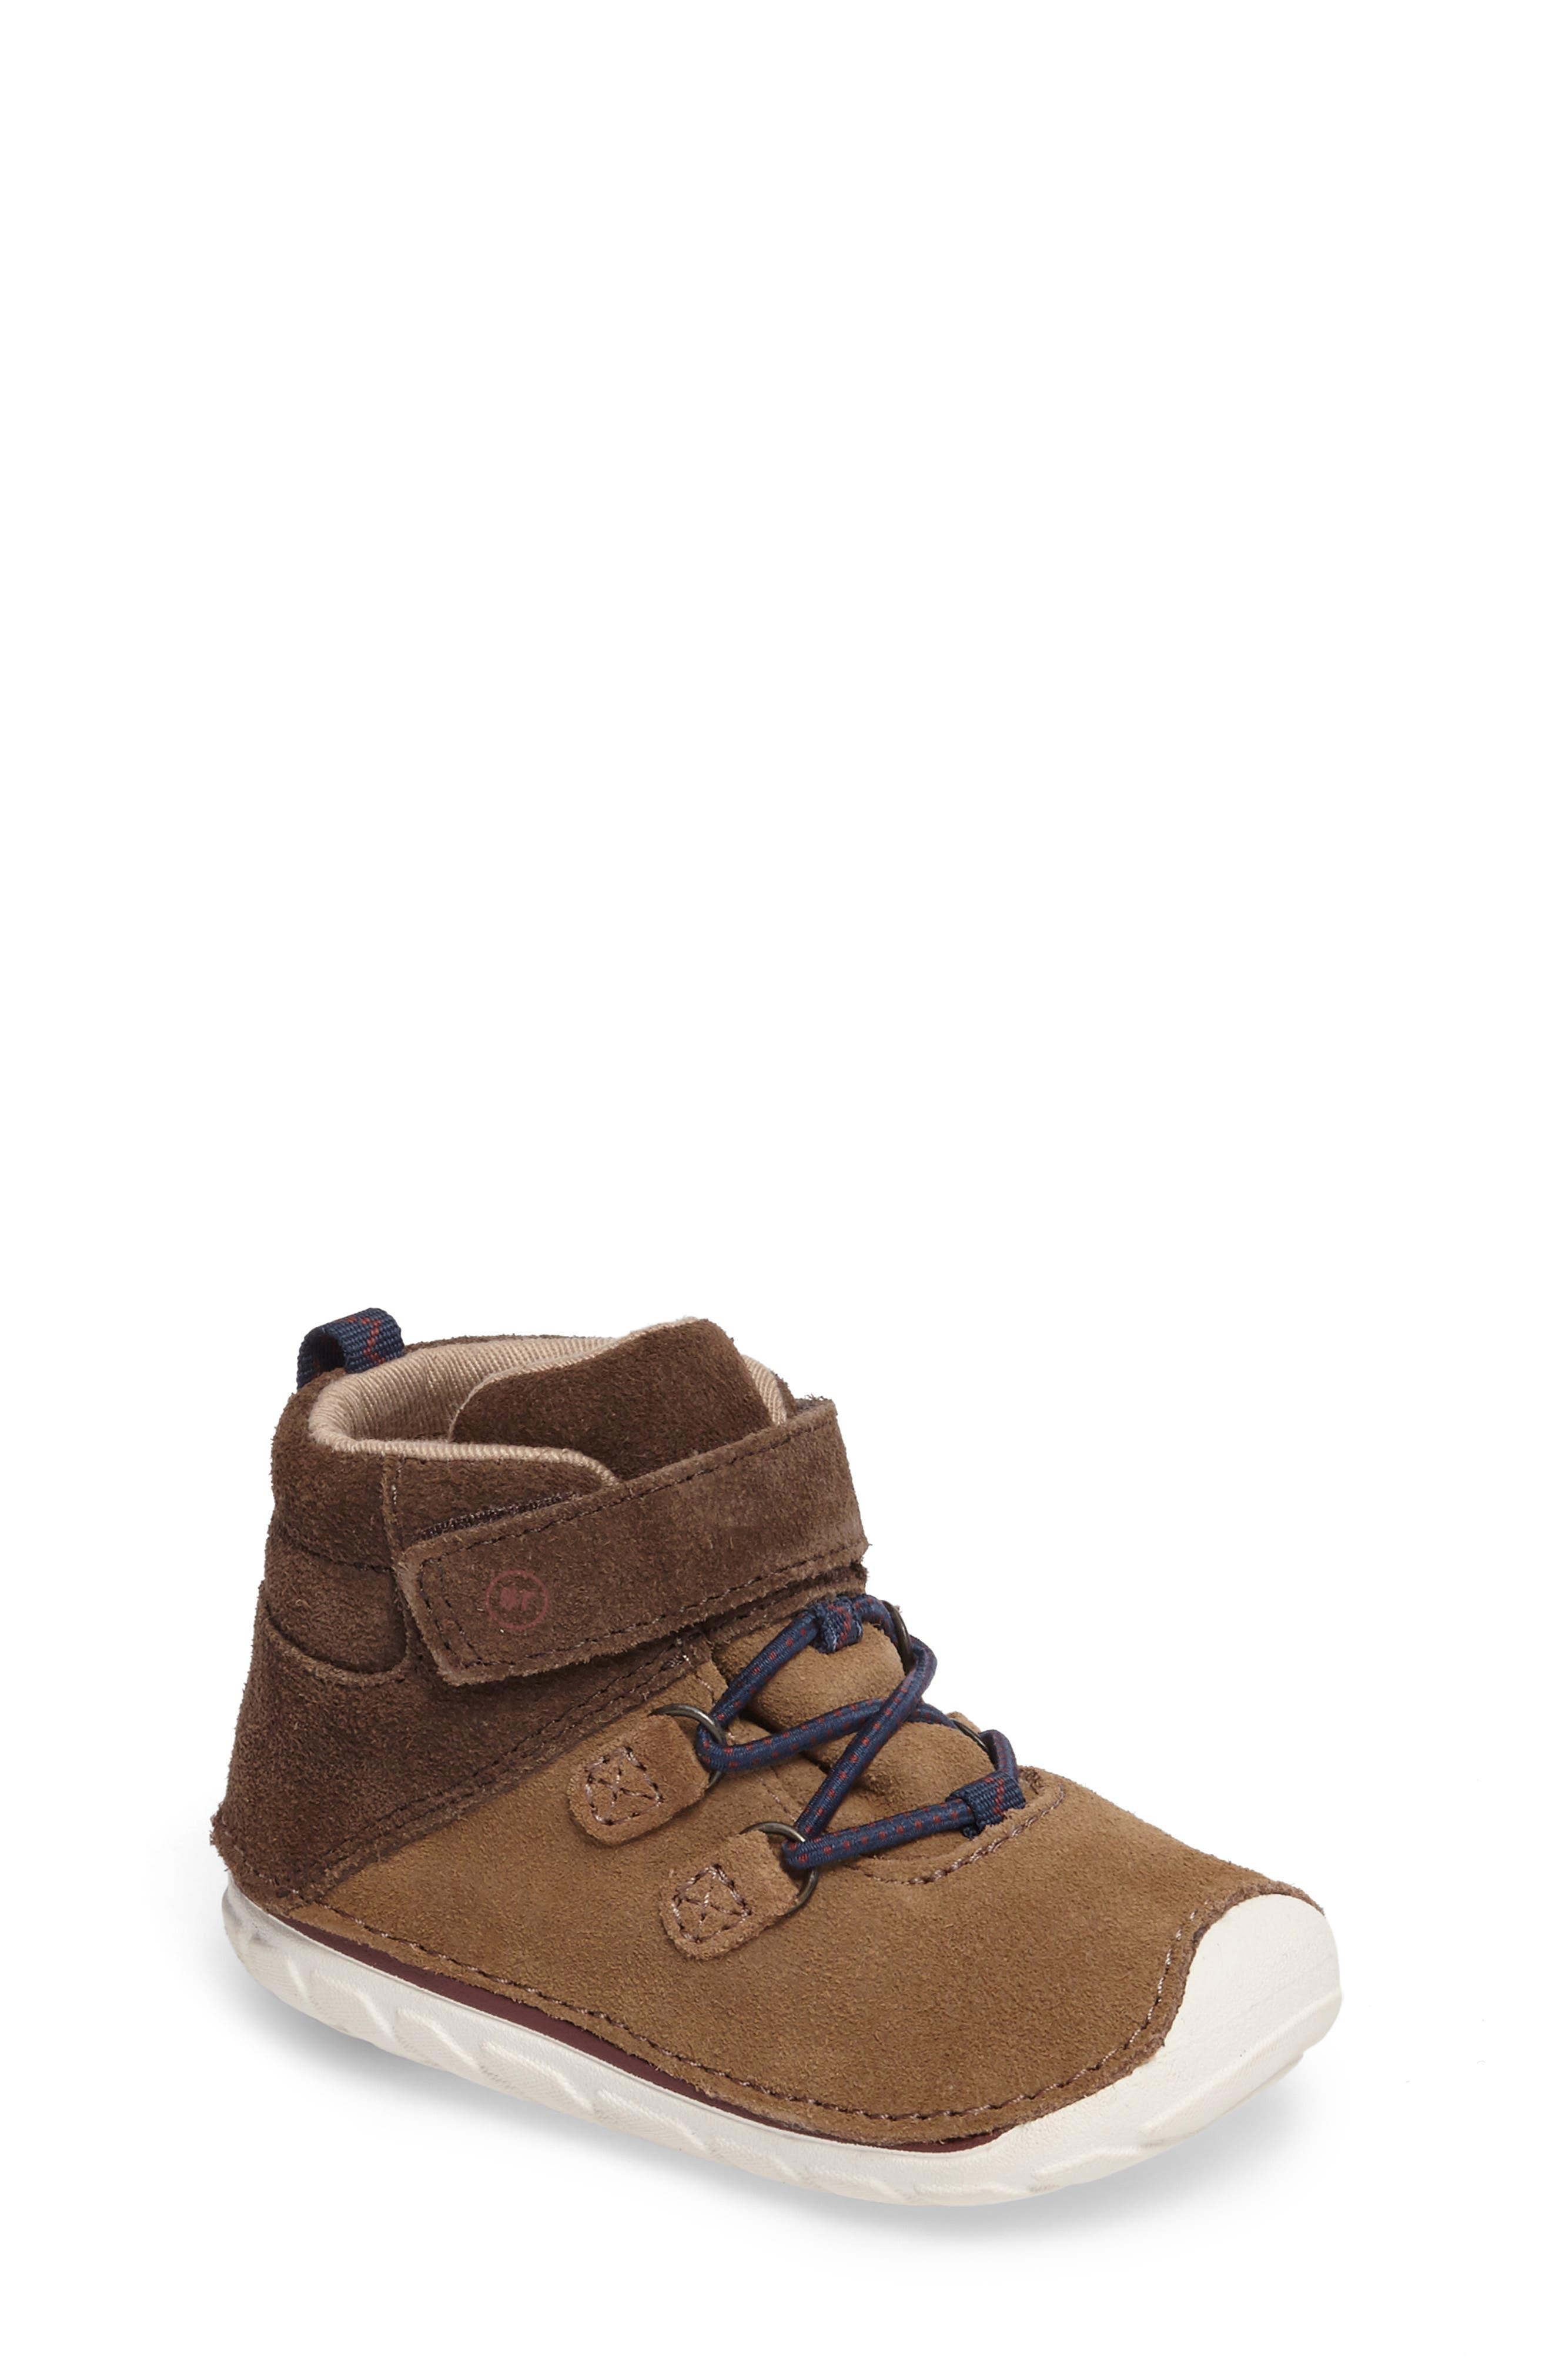 Soft Motion<sup>™</sup> Oliver High Top Sneaker,                             Main thumbnail 1, color,                             BROWN SUEDE